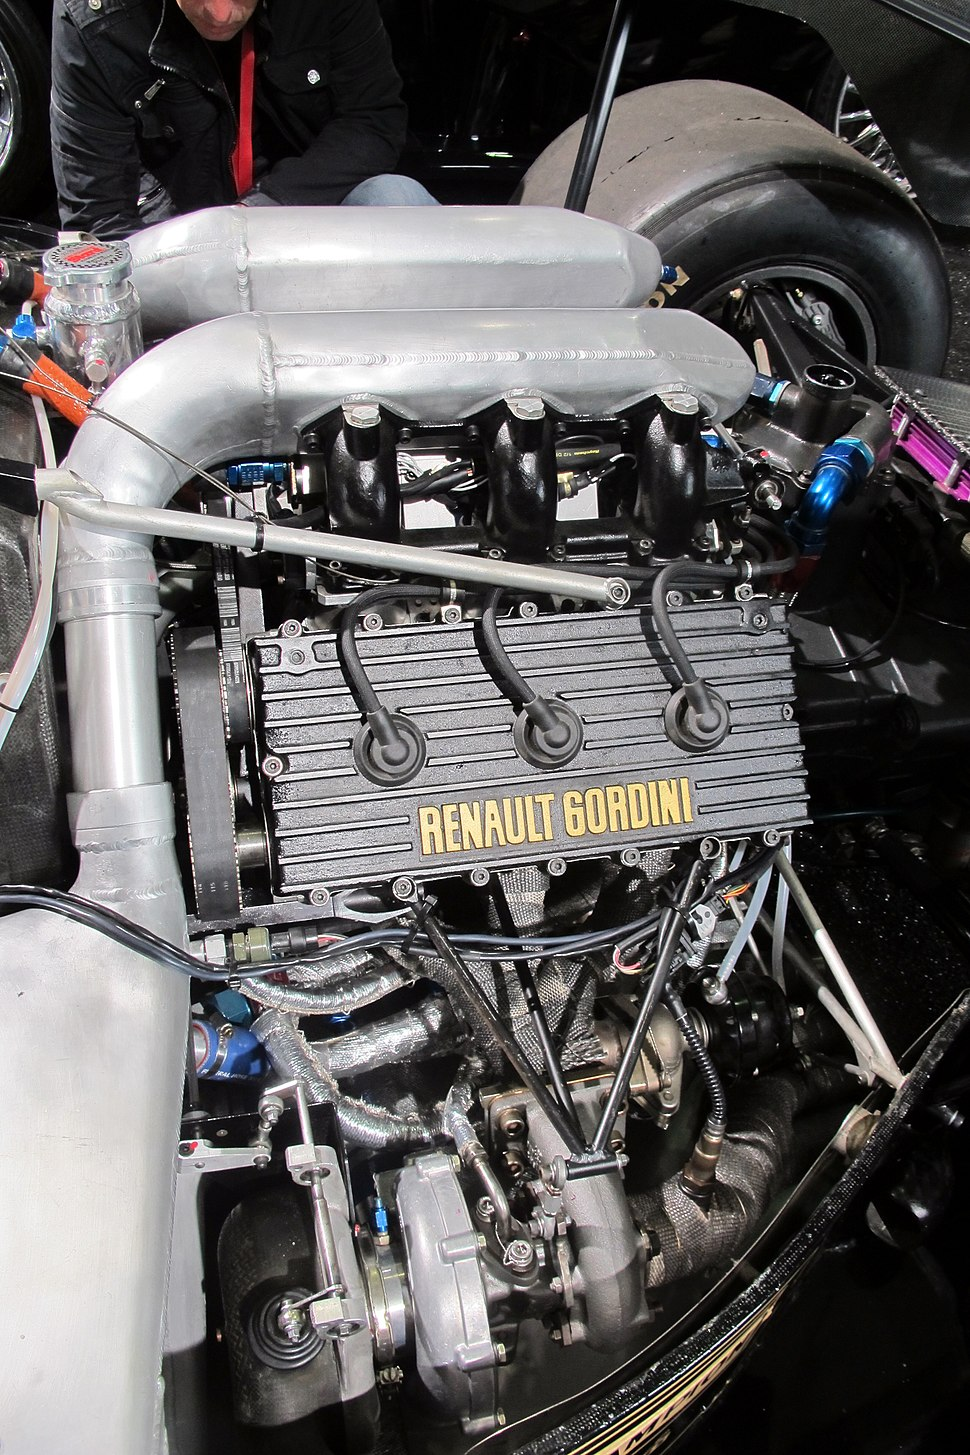 Renault F1 turbo engine in a Lotus 95T John Player Special